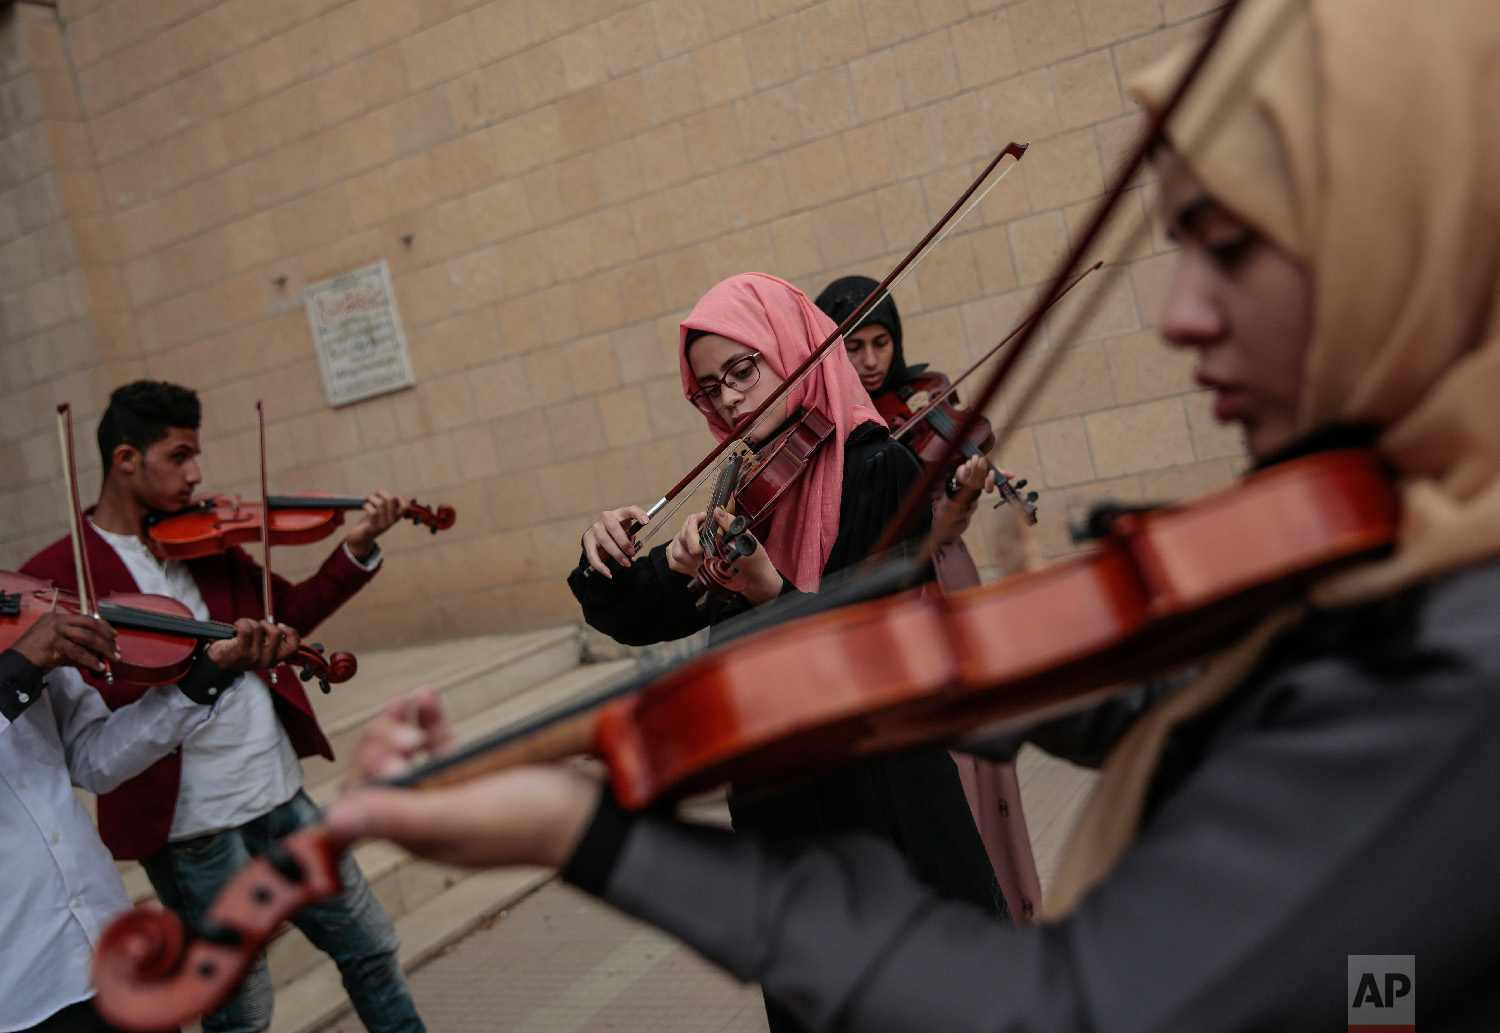 Yemeni music students play violins during a music class at the Cultural Centre in Sanaa, Yemen on Sunday, April 8, 2018.(AP Photo/Hani Mohammed)